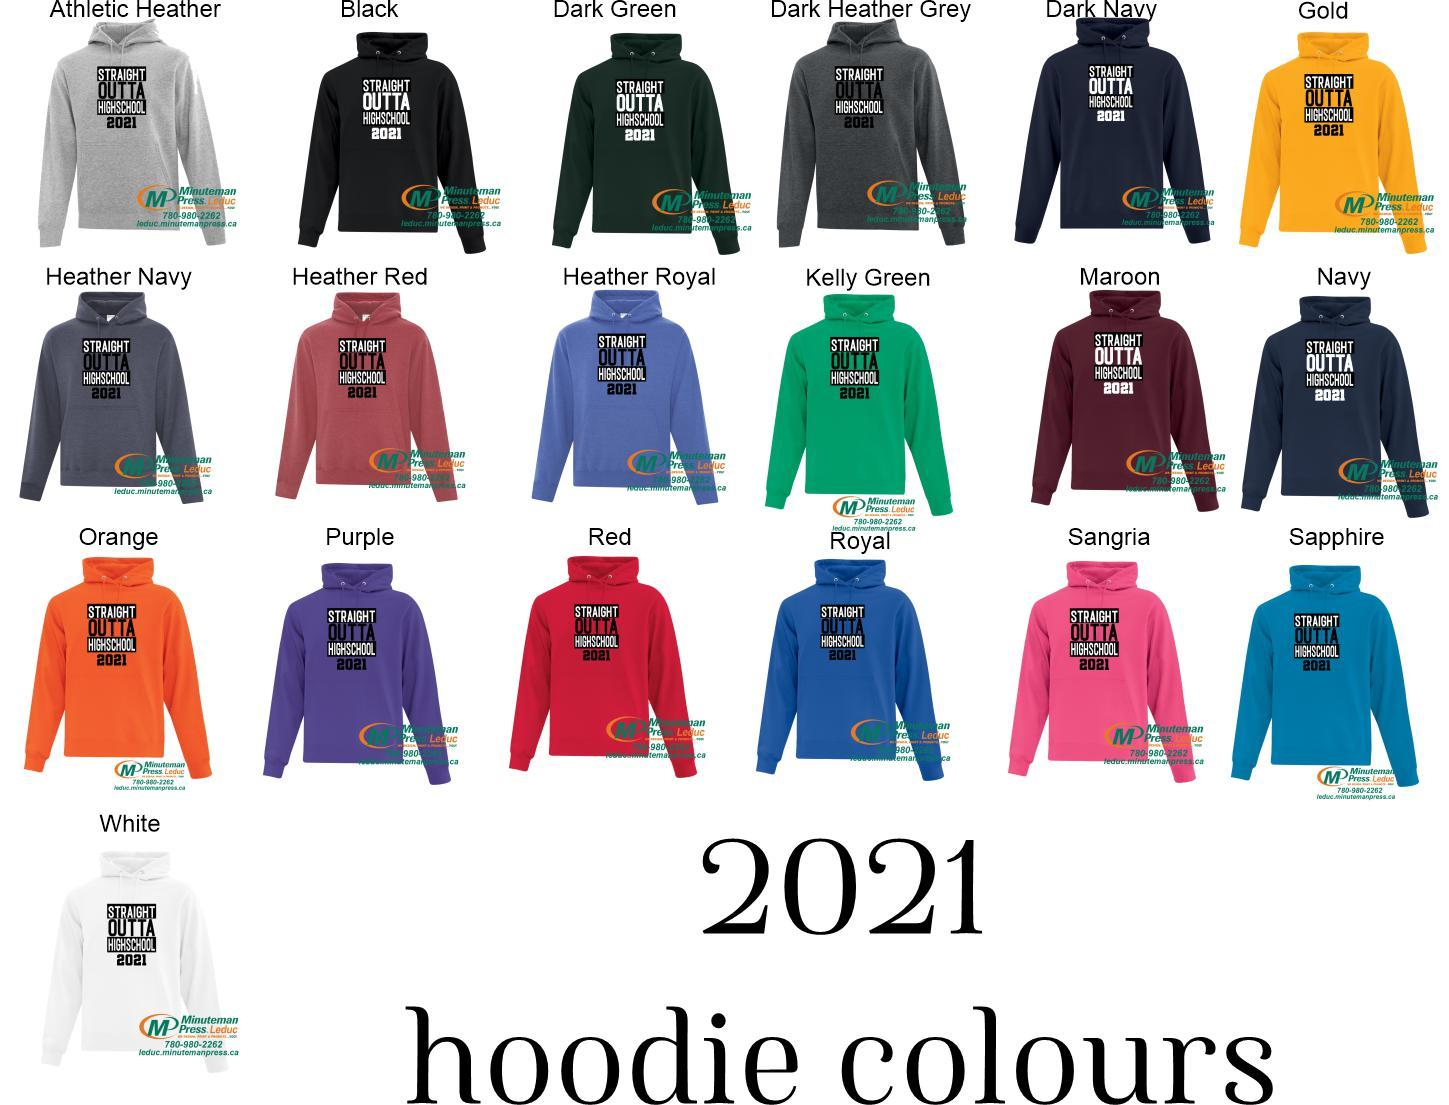 Straight Outta Highschool 2021 - Super comfortable hoodies